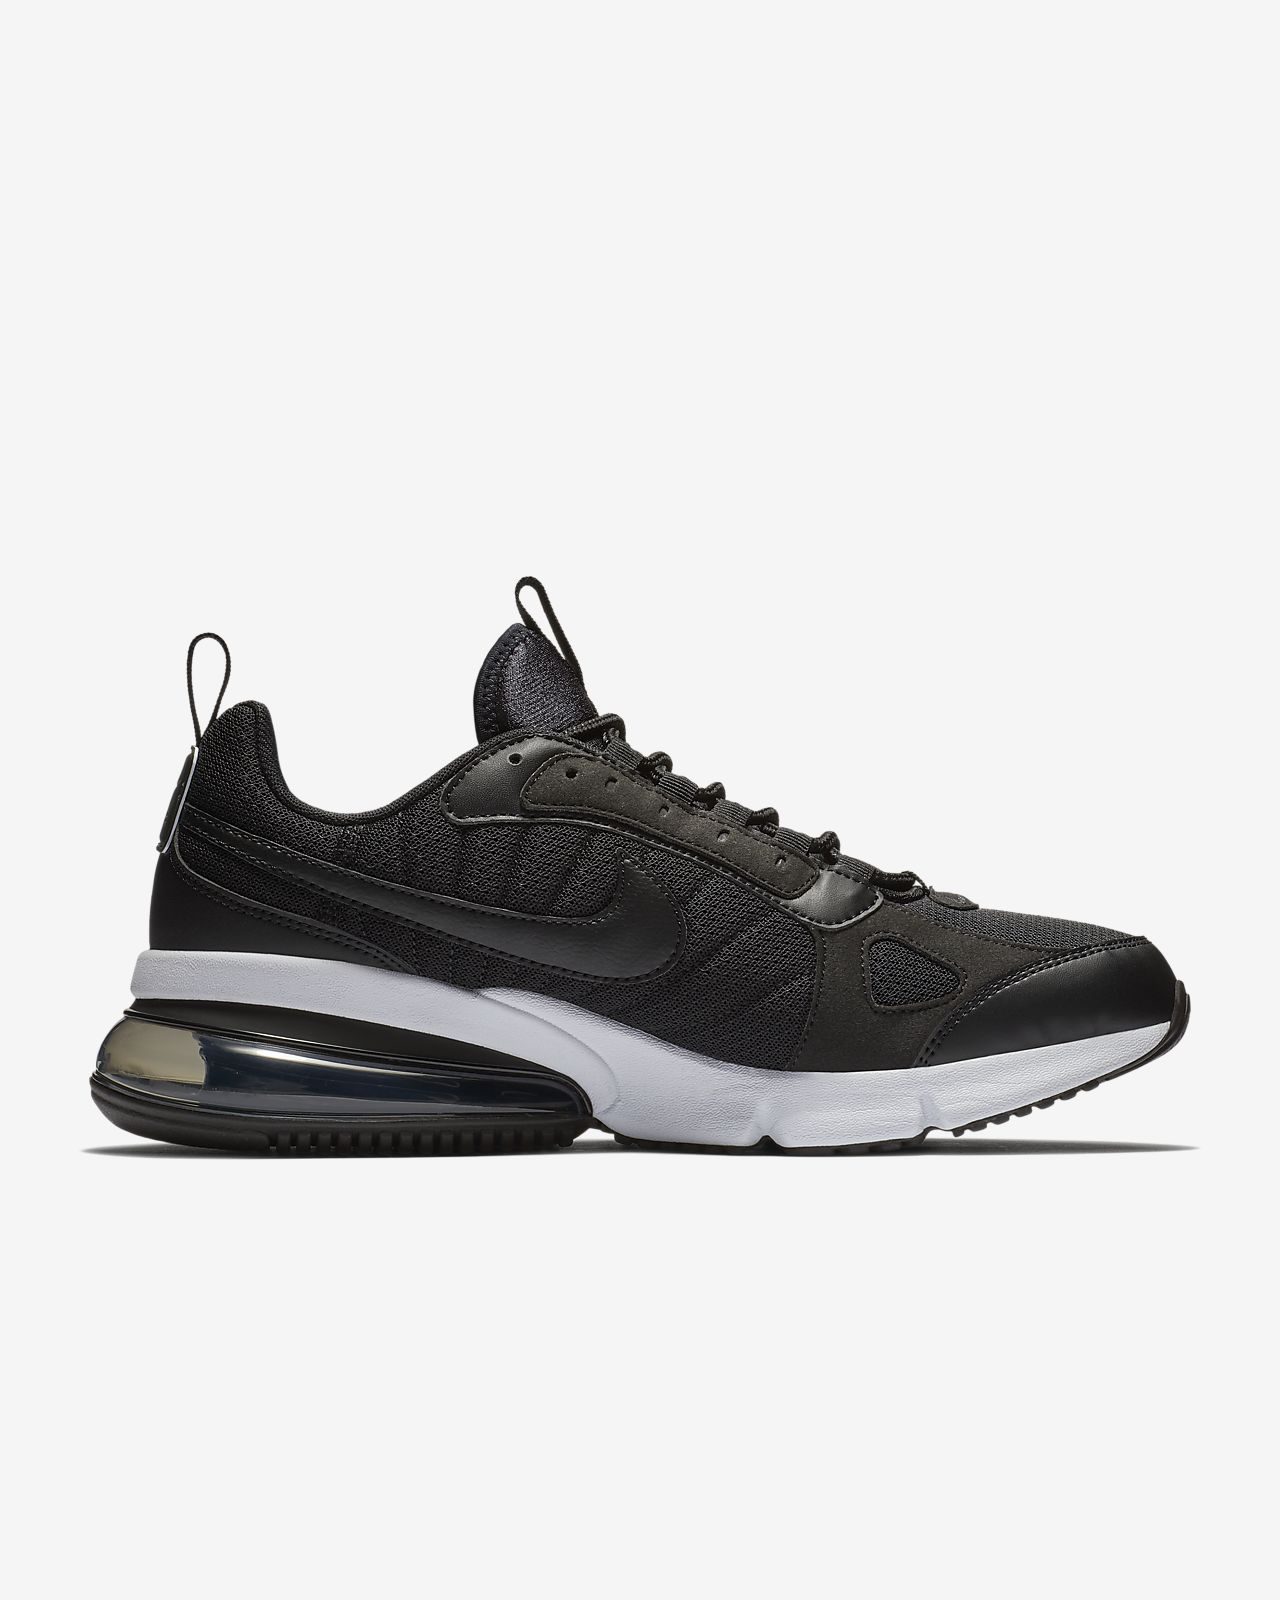 dff70a5fbed31 Nike Air Max 270 Futura Men s Shoe. Nike.com BE